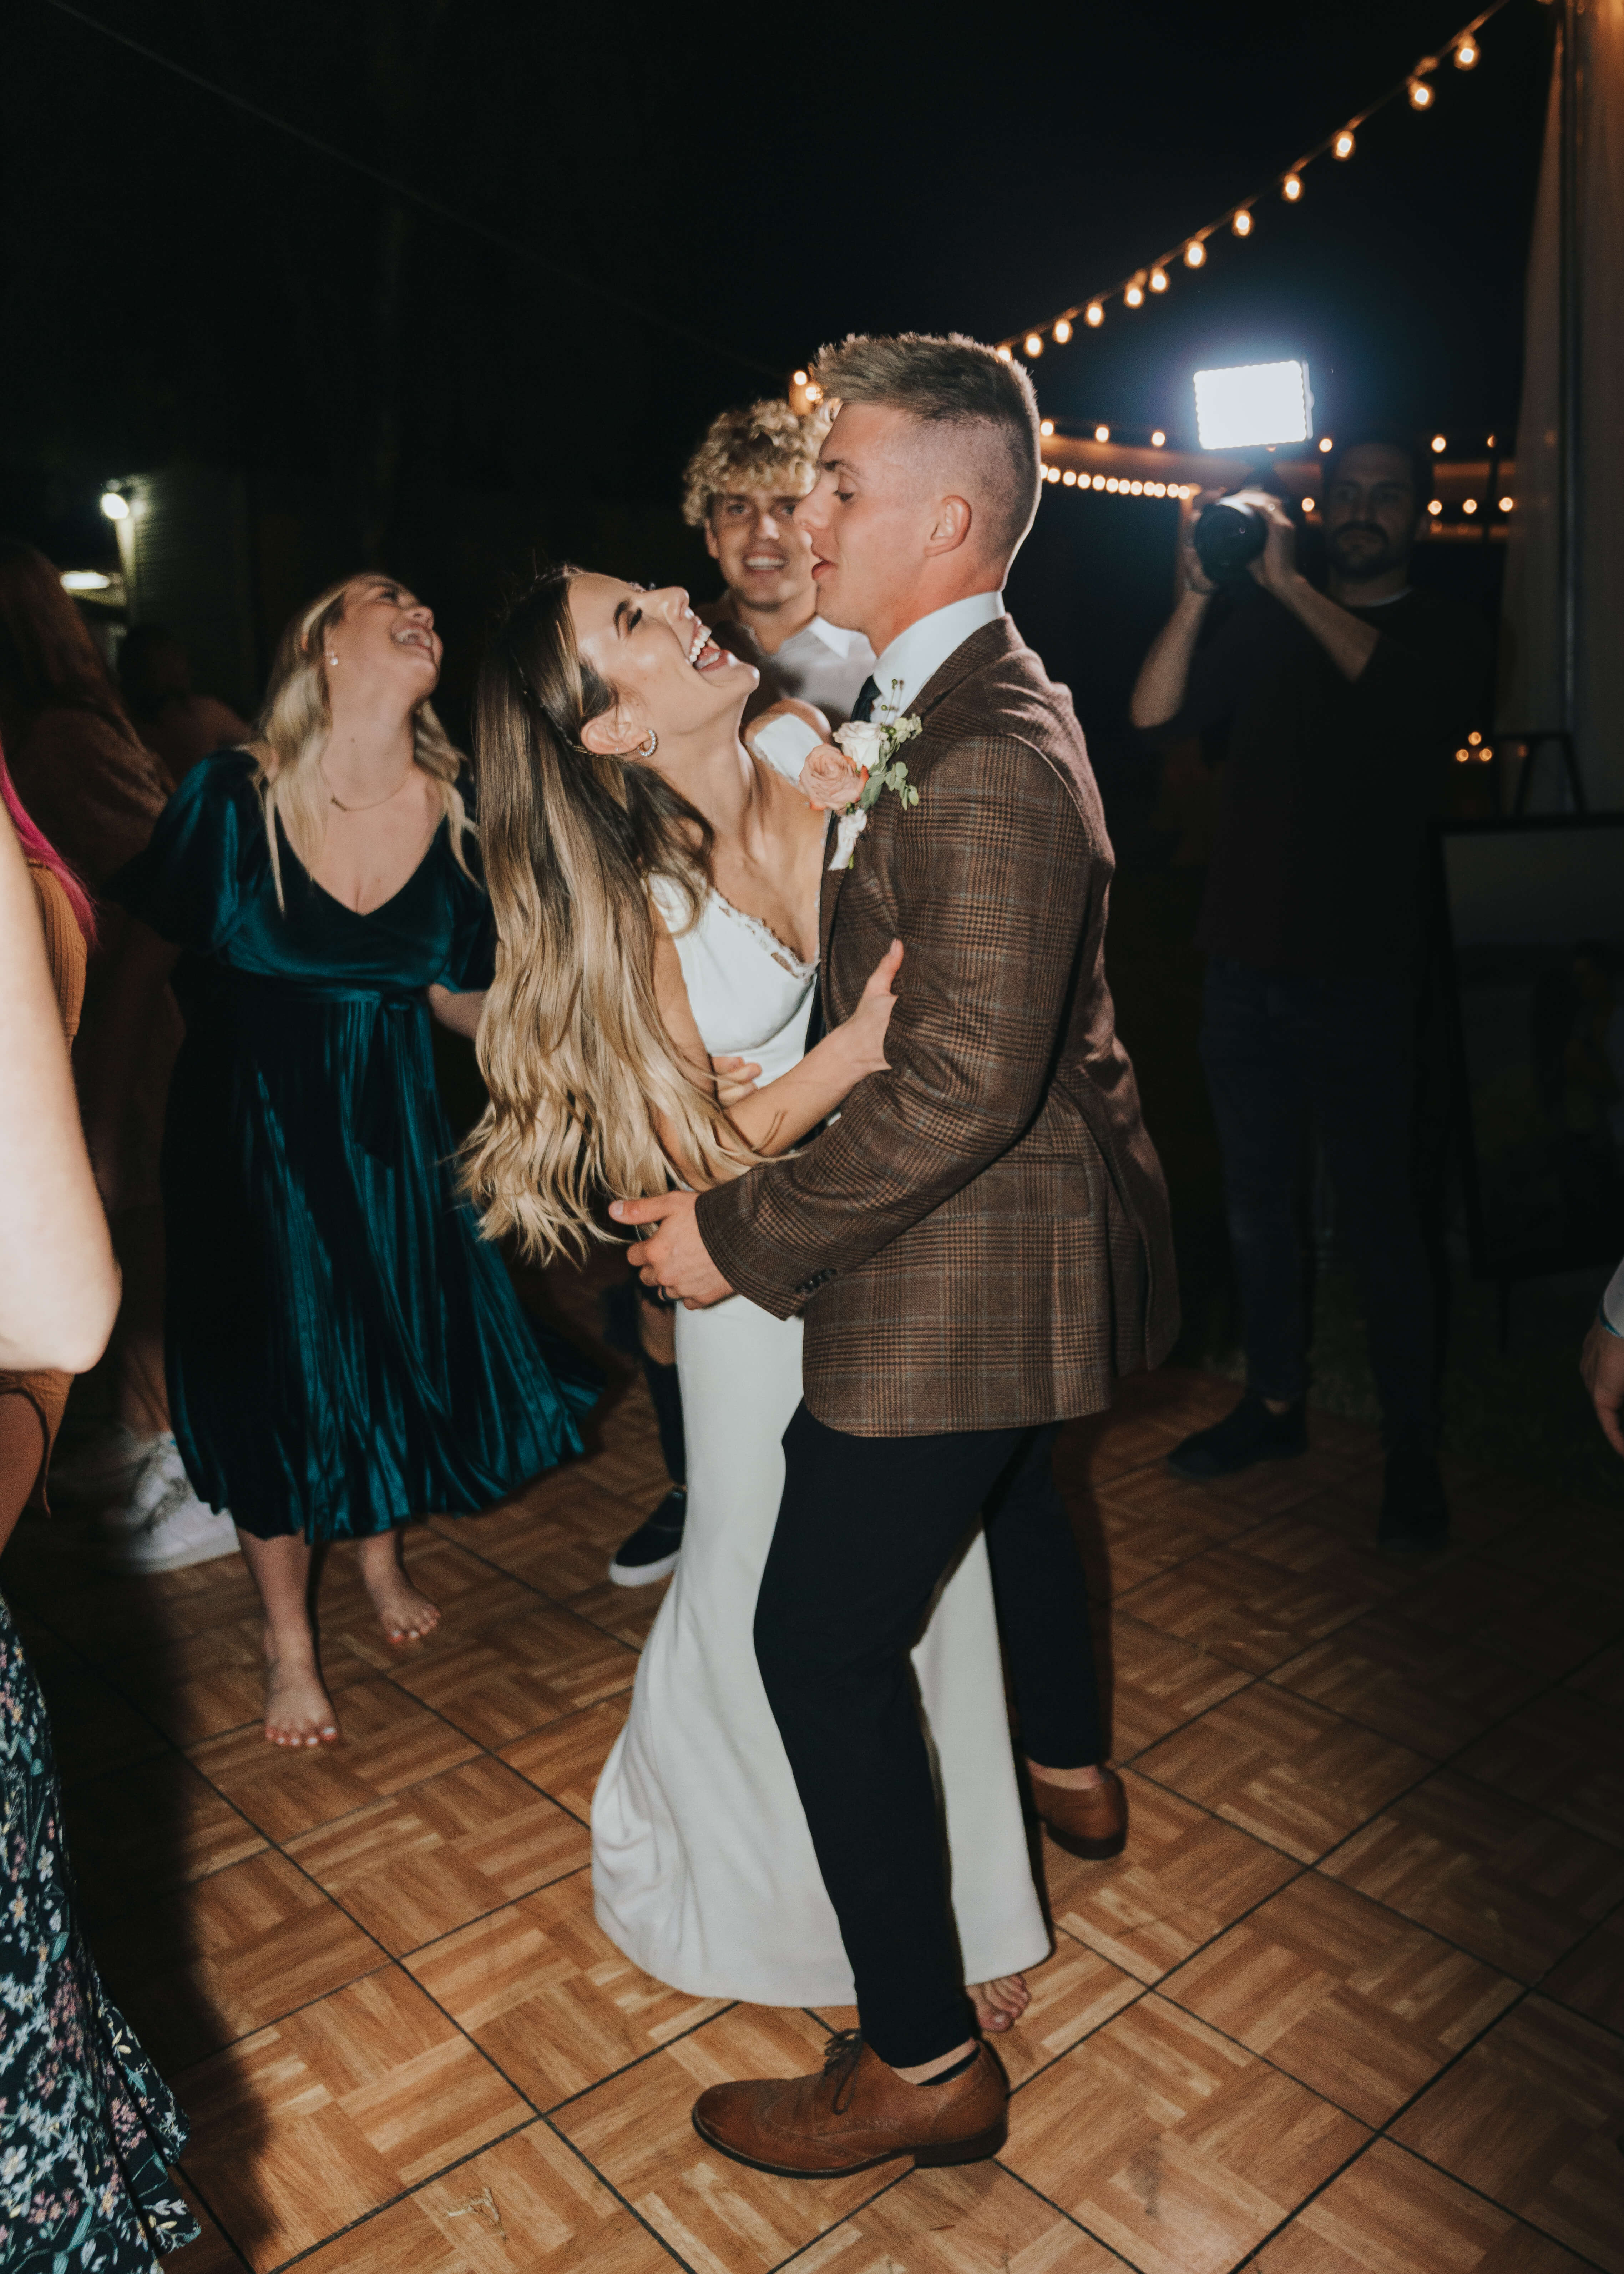 candid dancing photo of bride and groom on wedding day happy and romantic